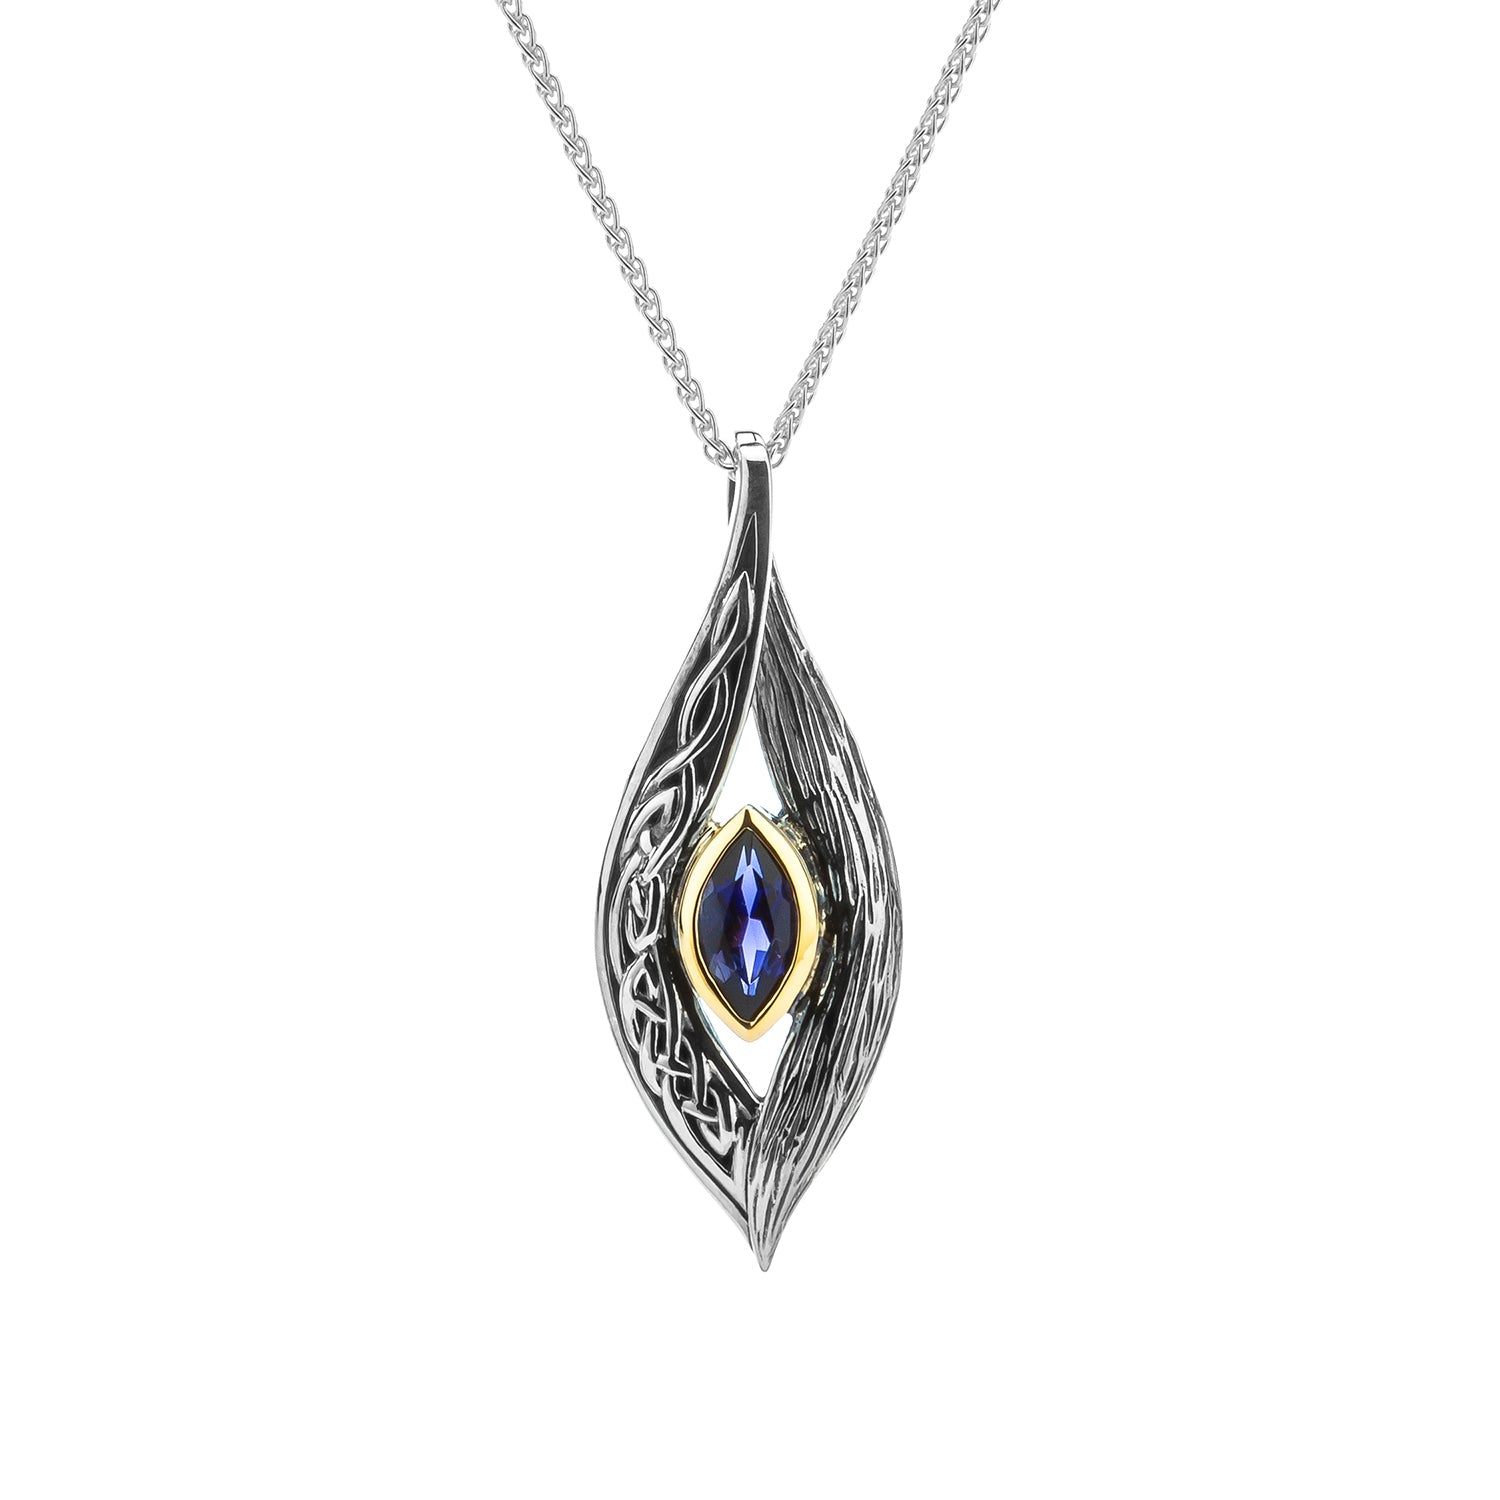 Pendant 10k Iolite Eternity Knot Elven Pendant from welch and company jewelers near syracuse ny